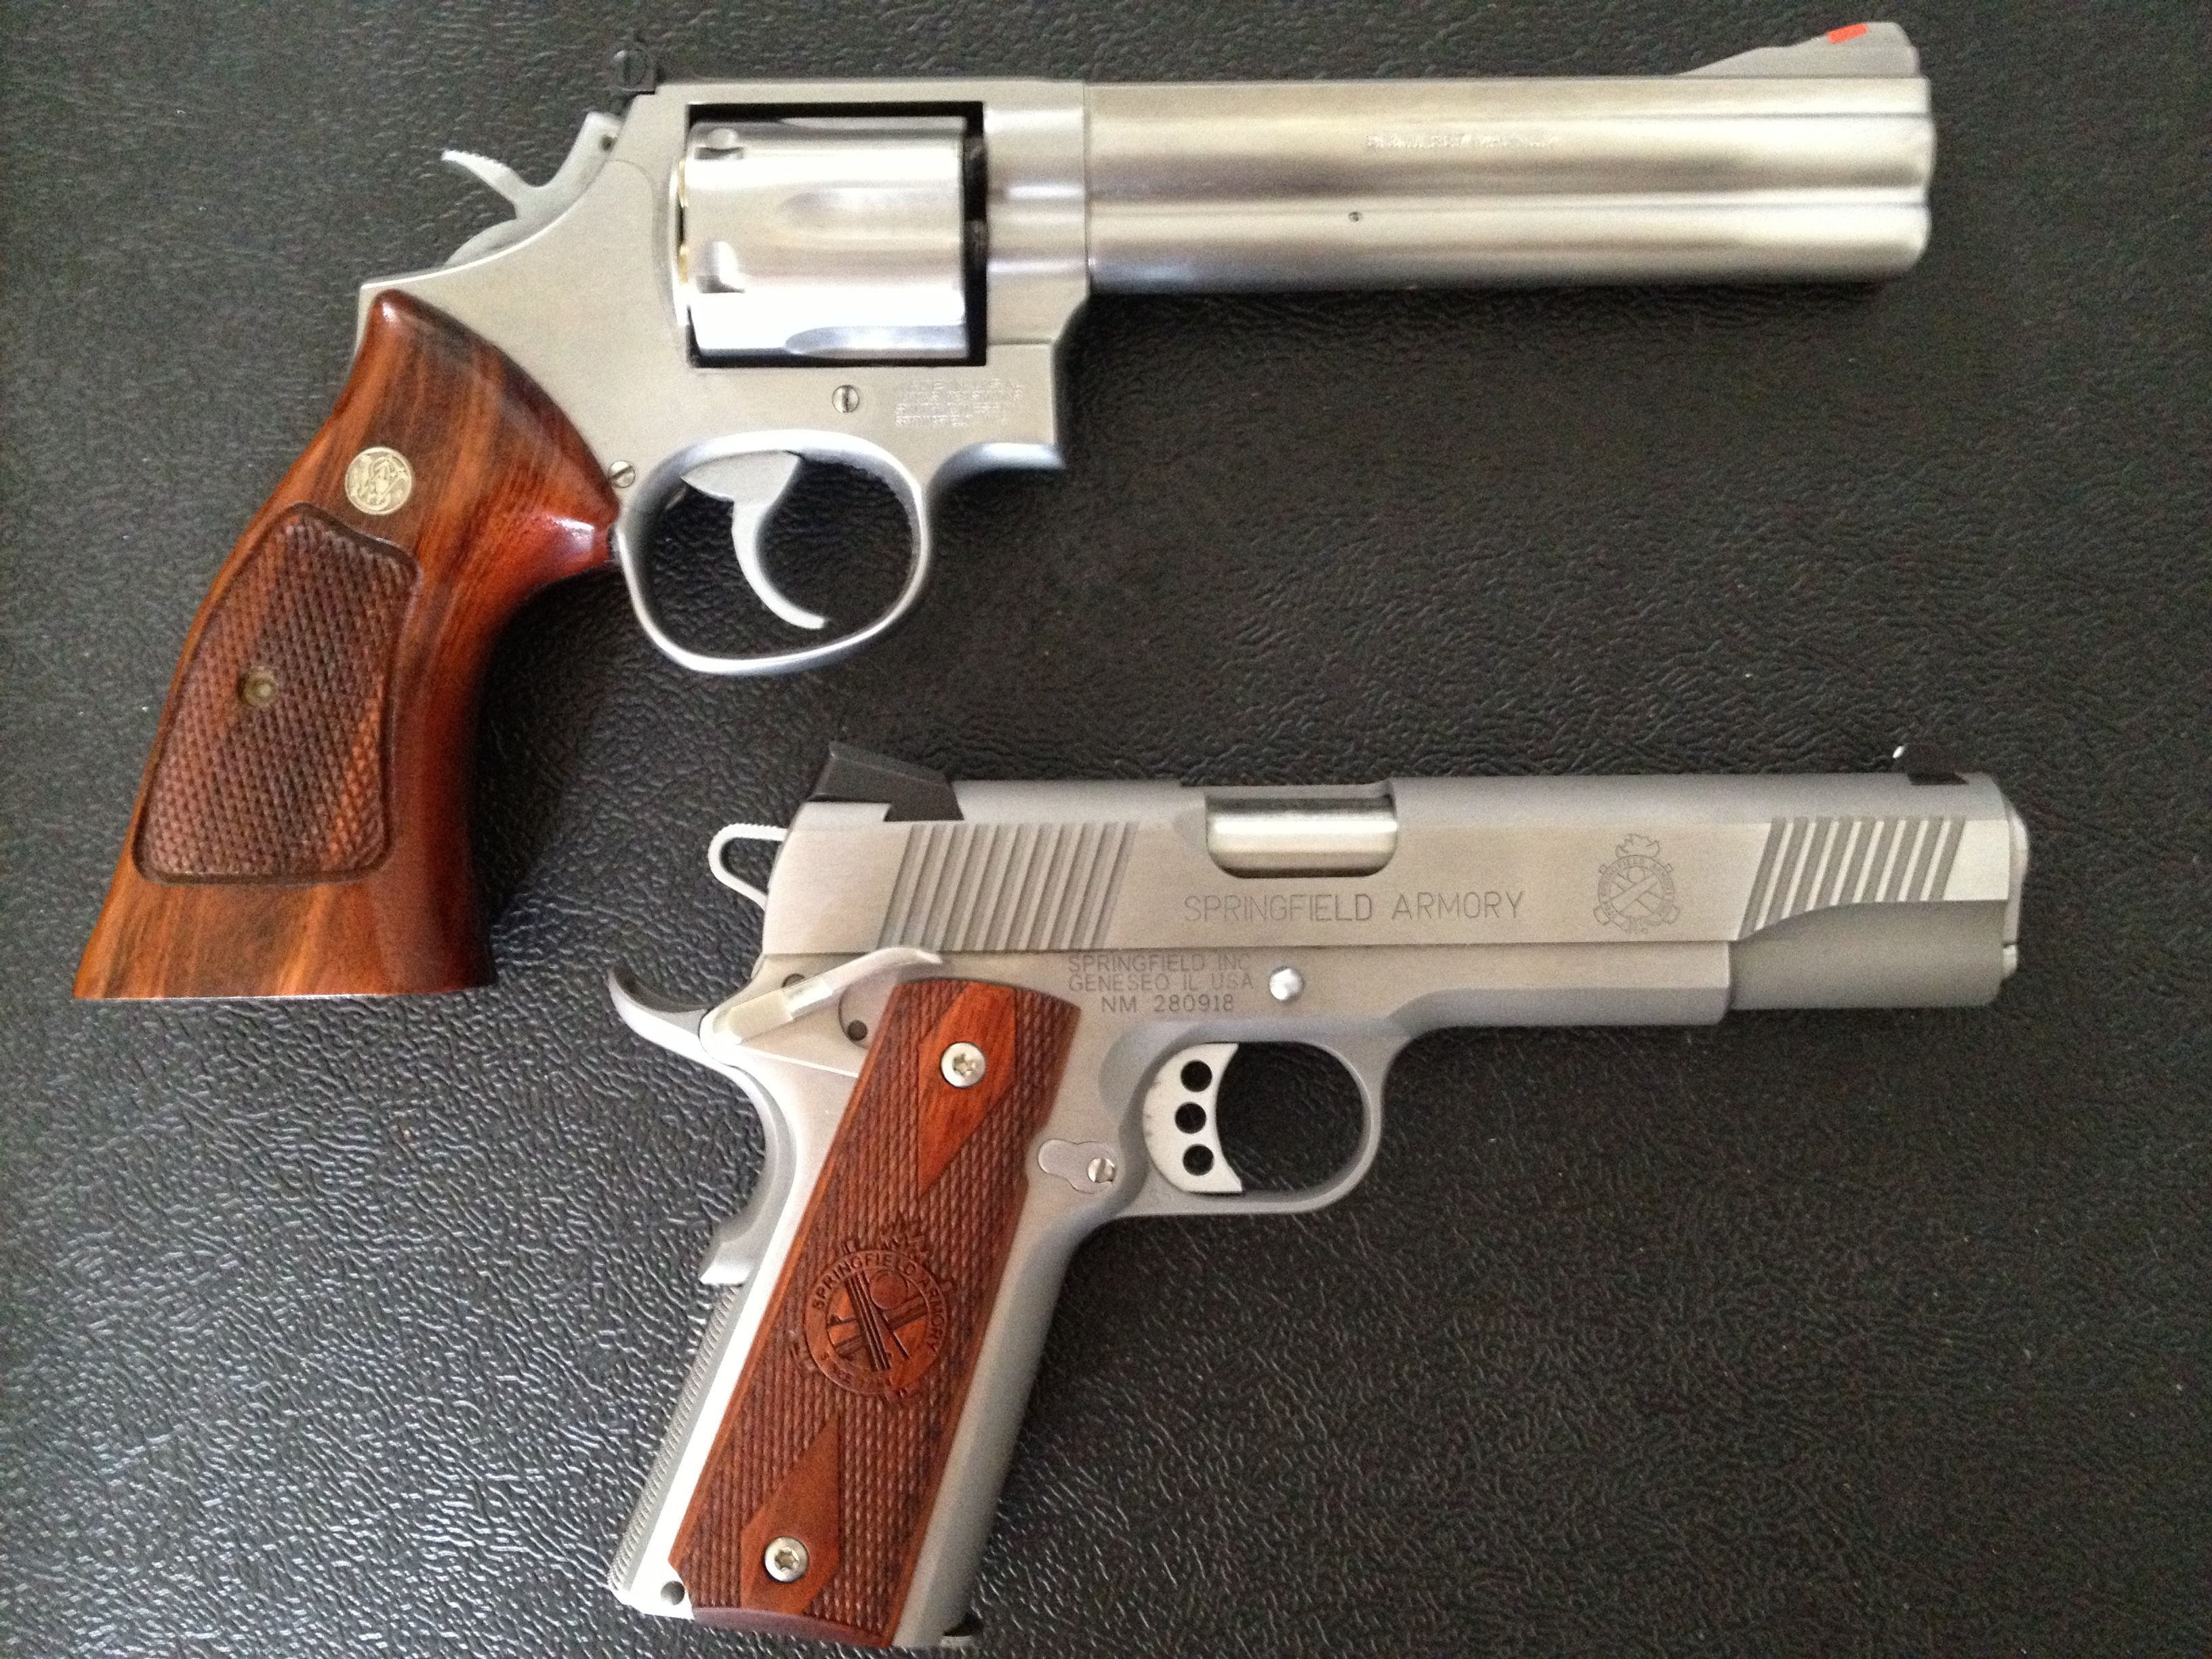 My Smith & Wesson 686 .357 Magnum and Springfield 1911 ...